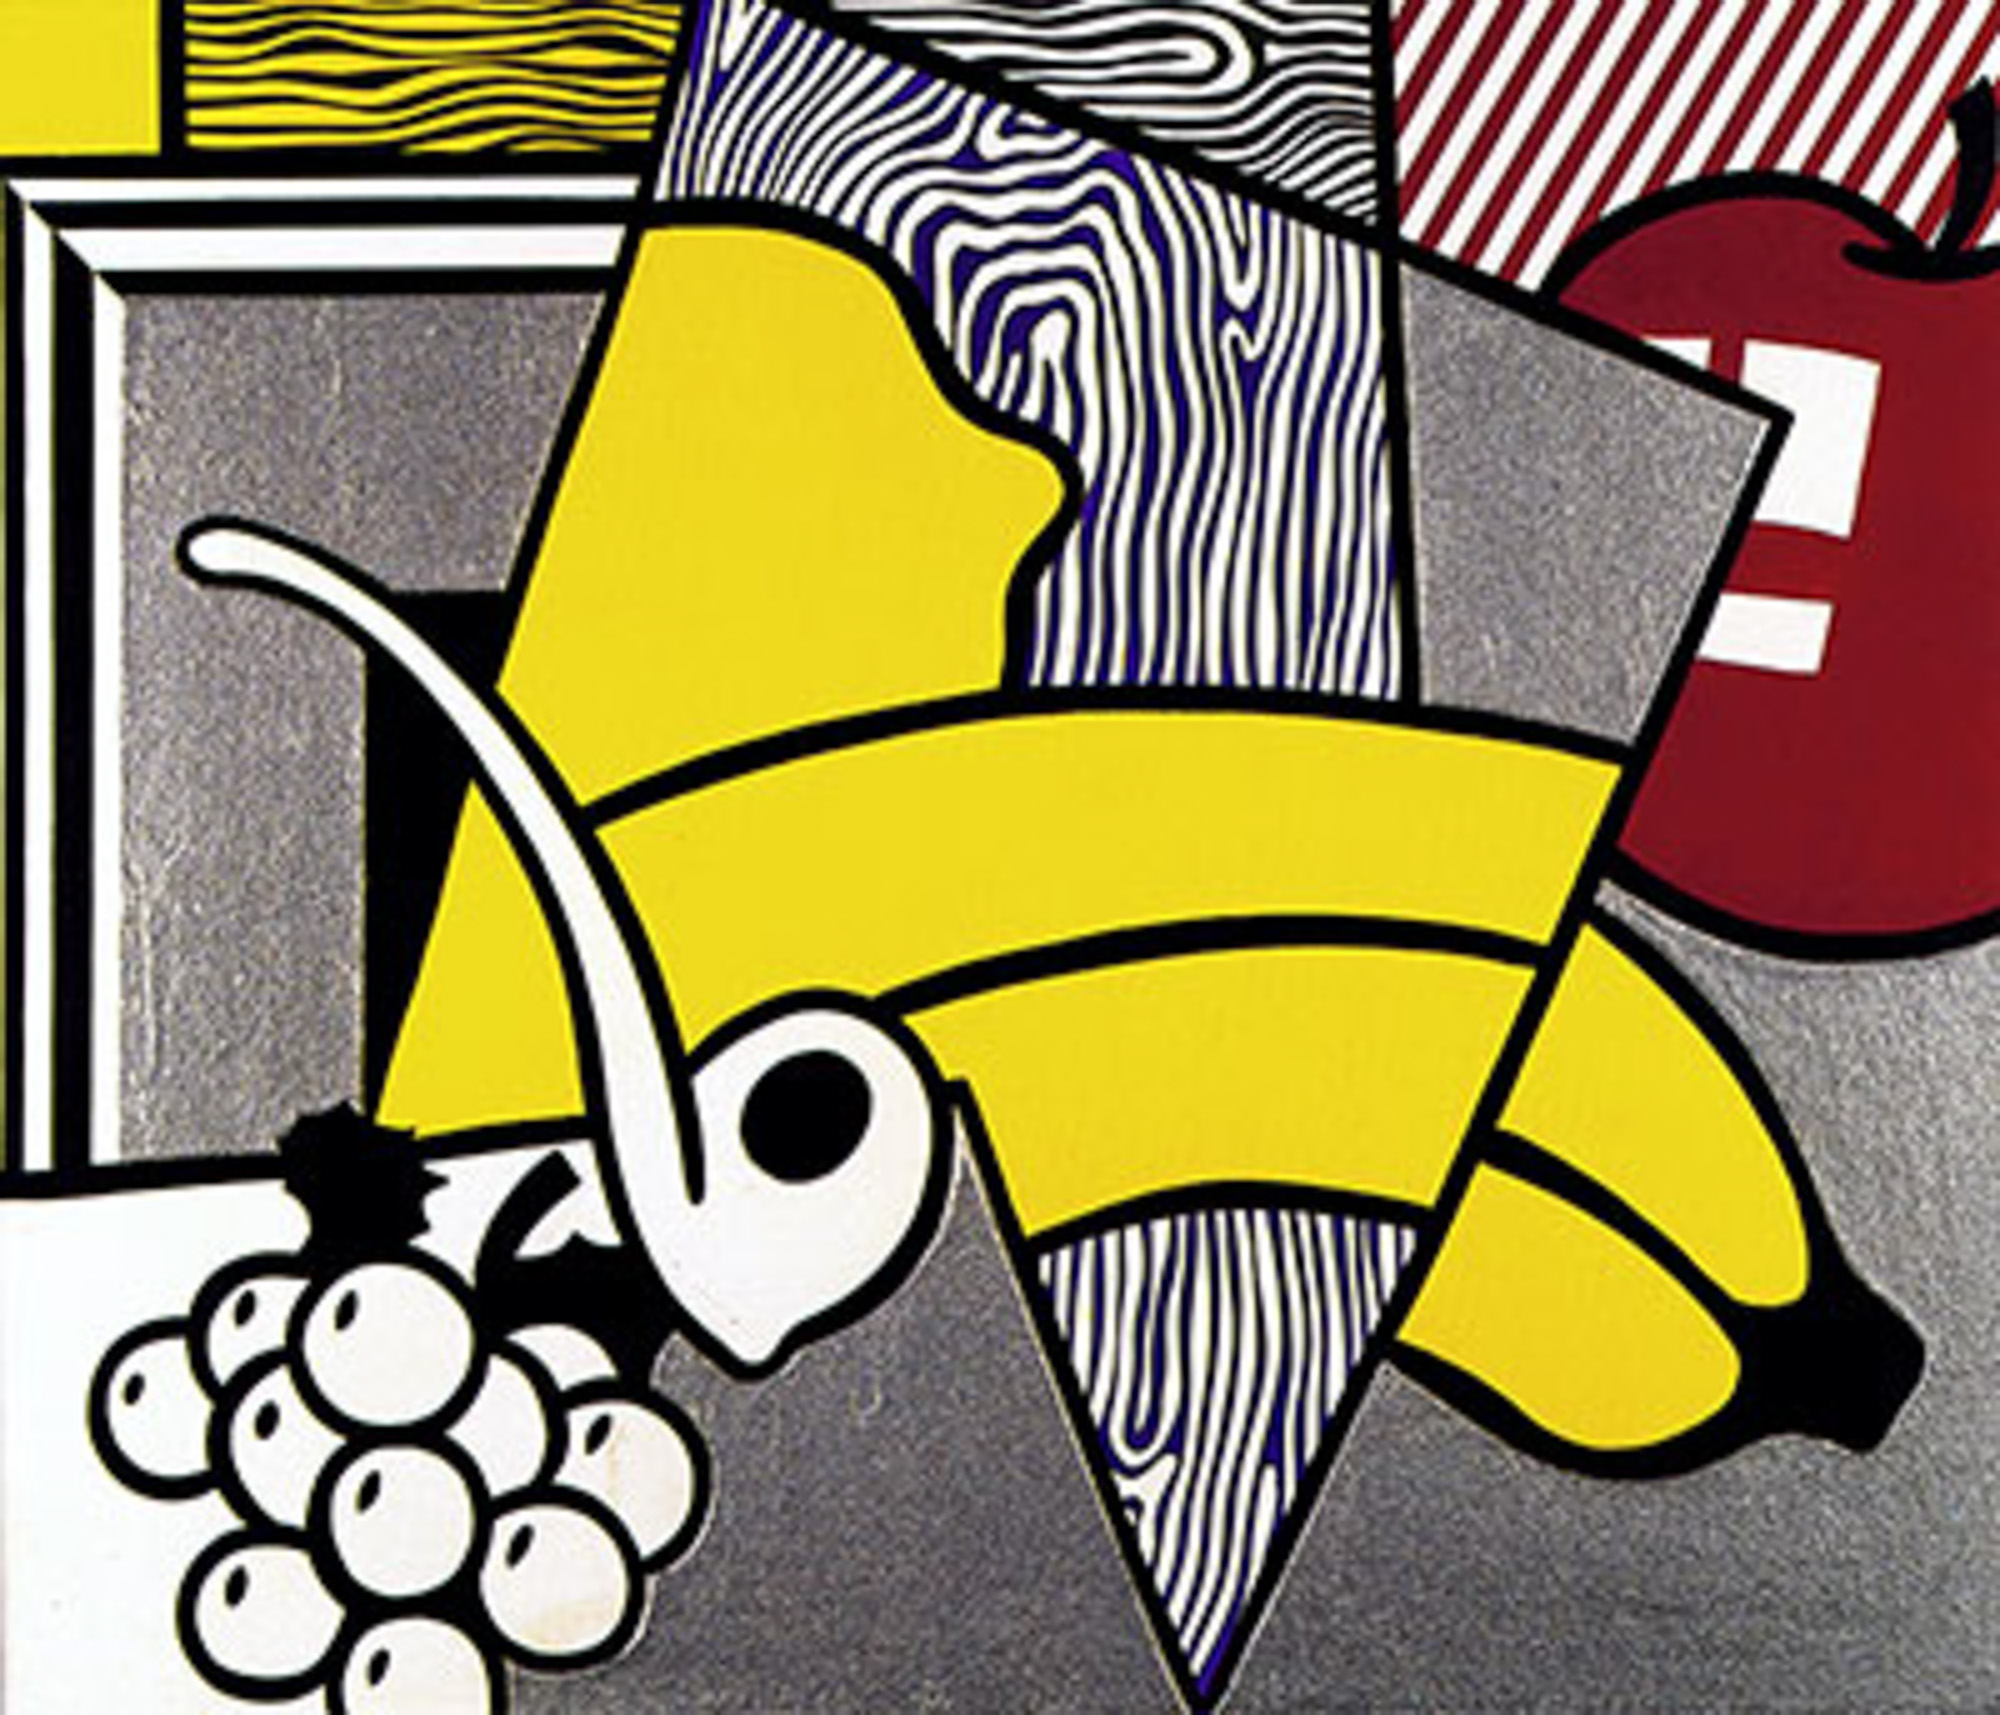 Roy Lichtenstein art 27